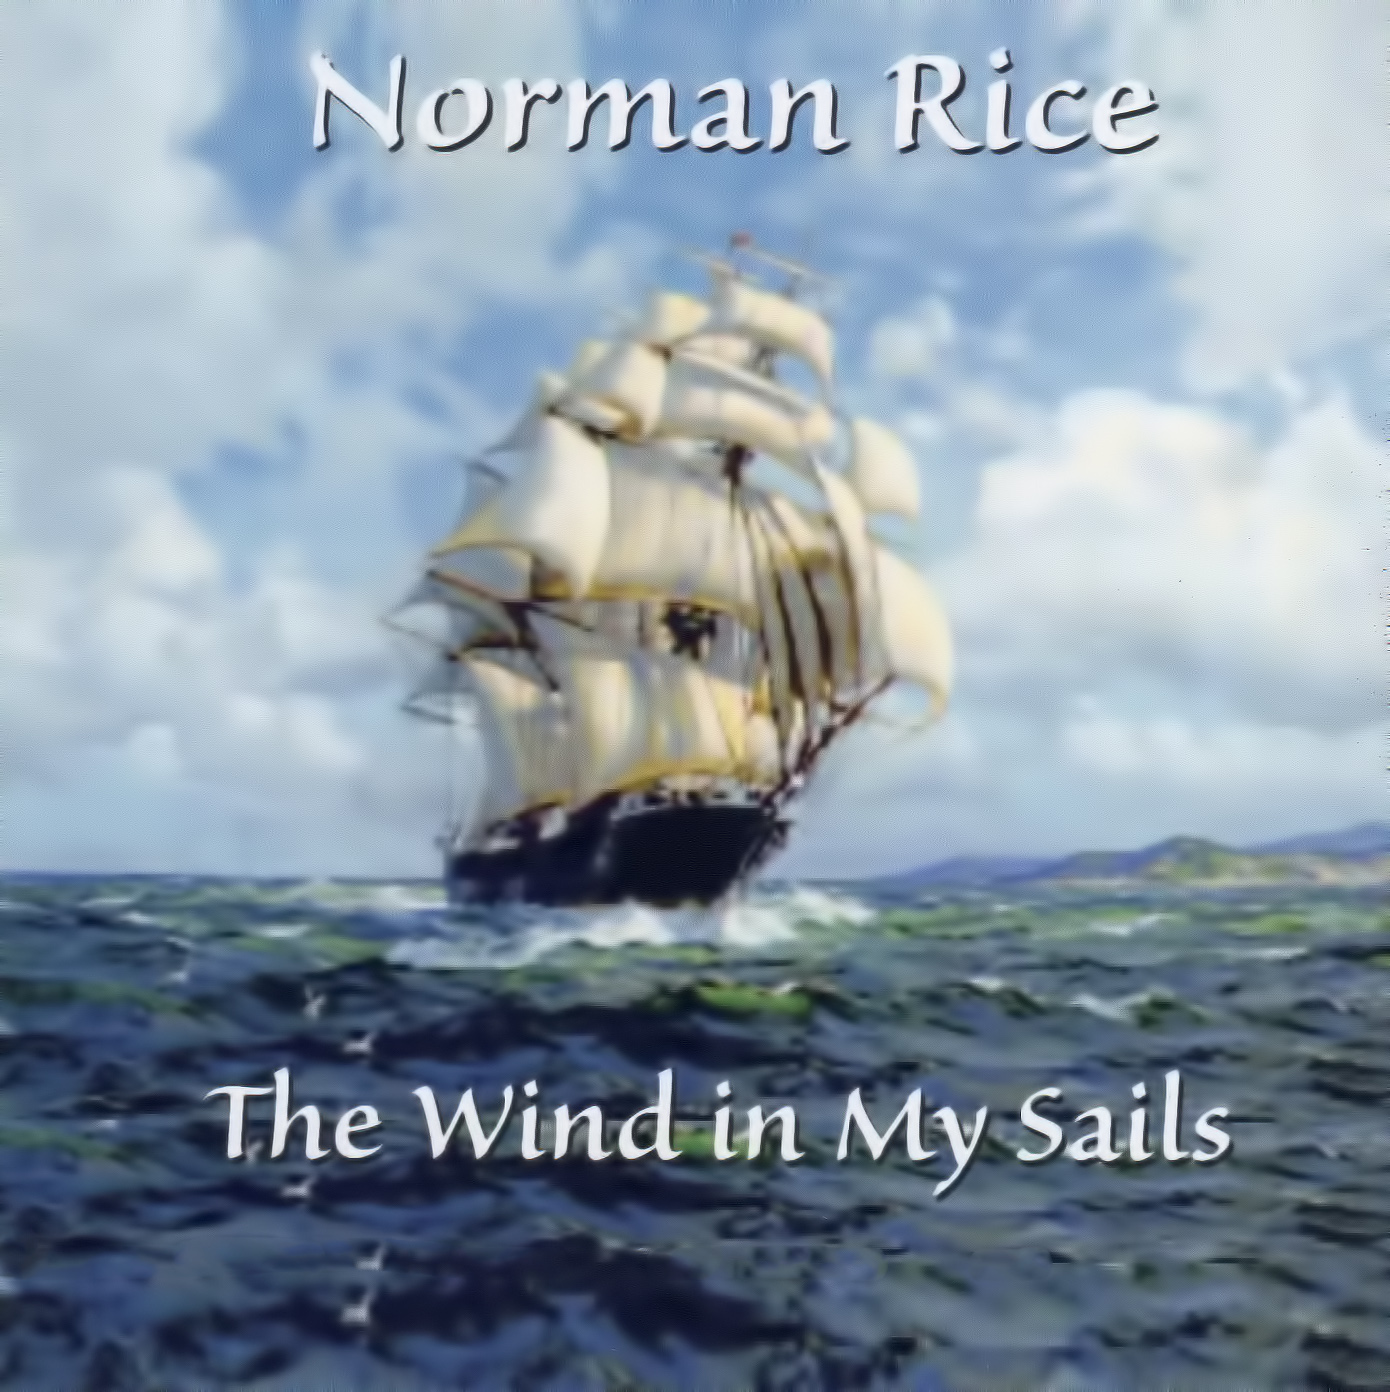 Norman Rice - The Wind in My Sails